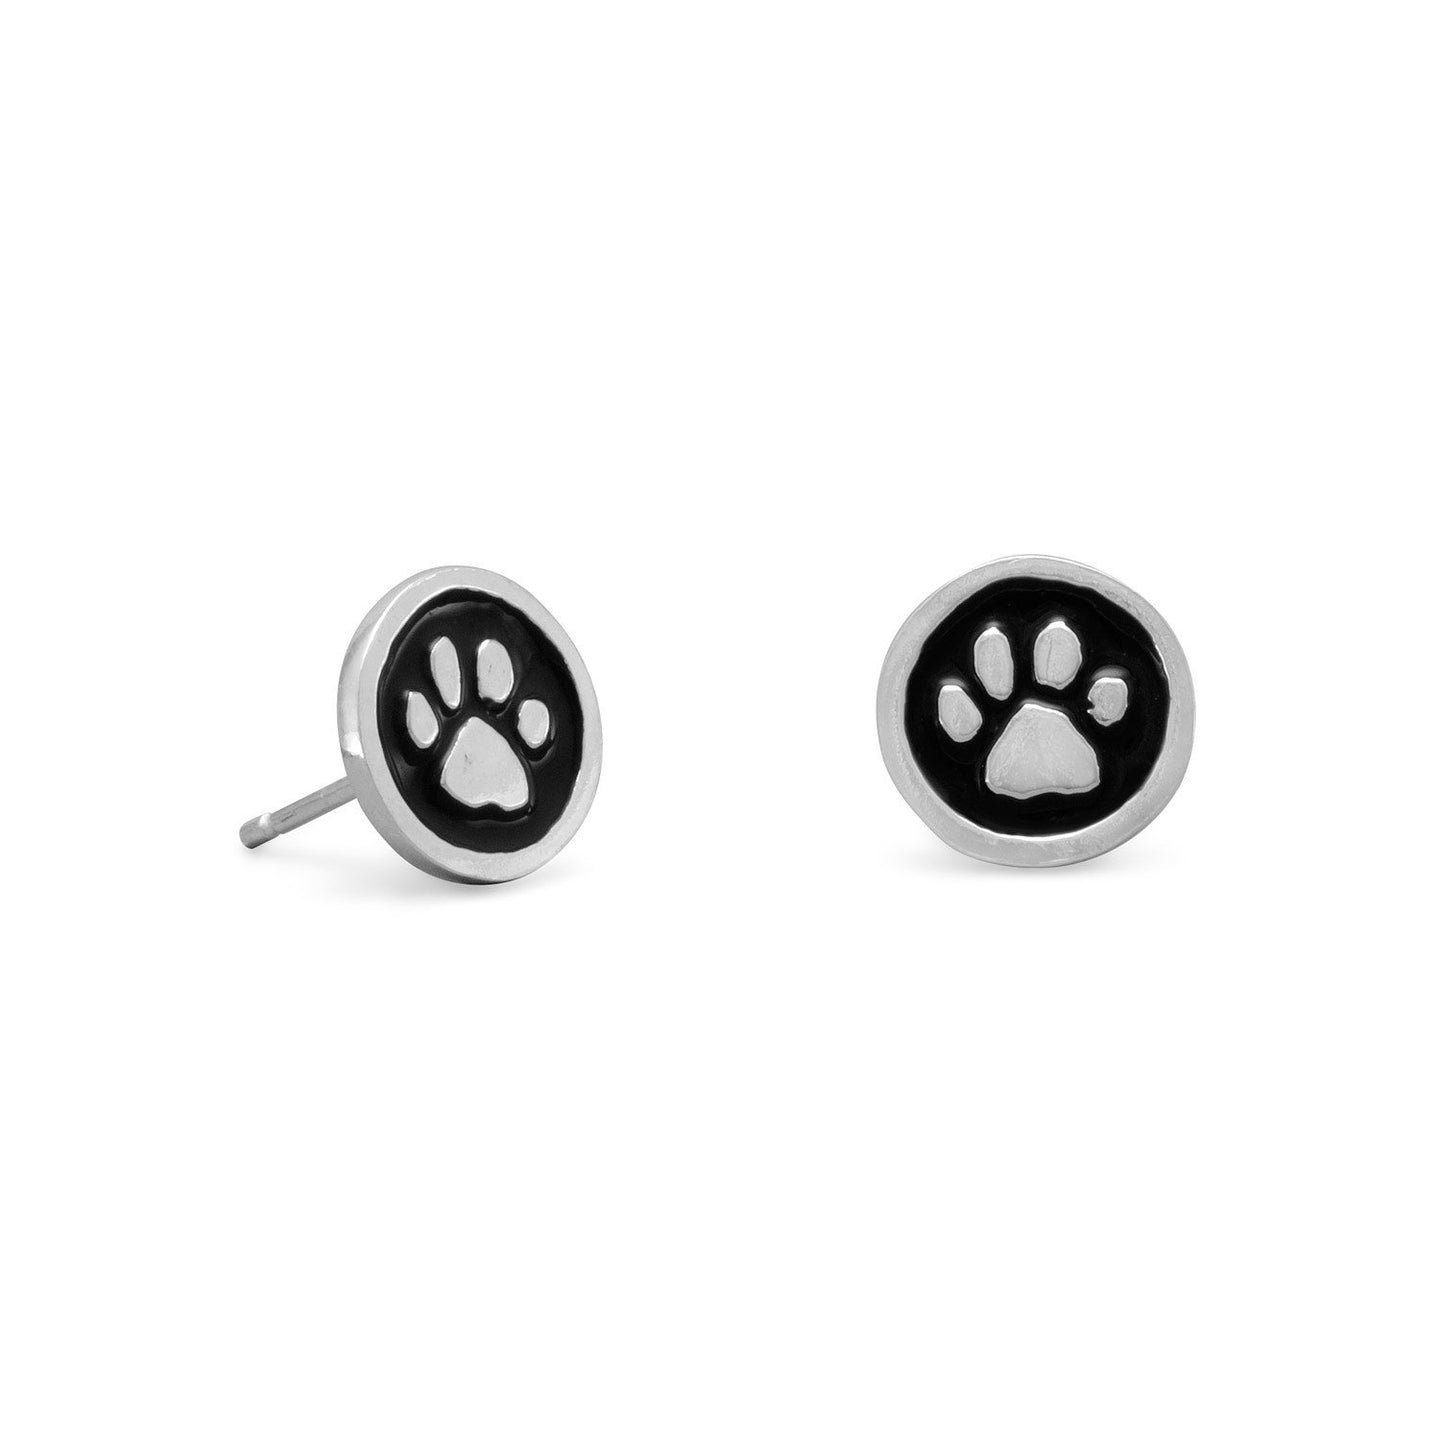 Enamel Paw Print Stud Earrings - the-southern-magnolia-too